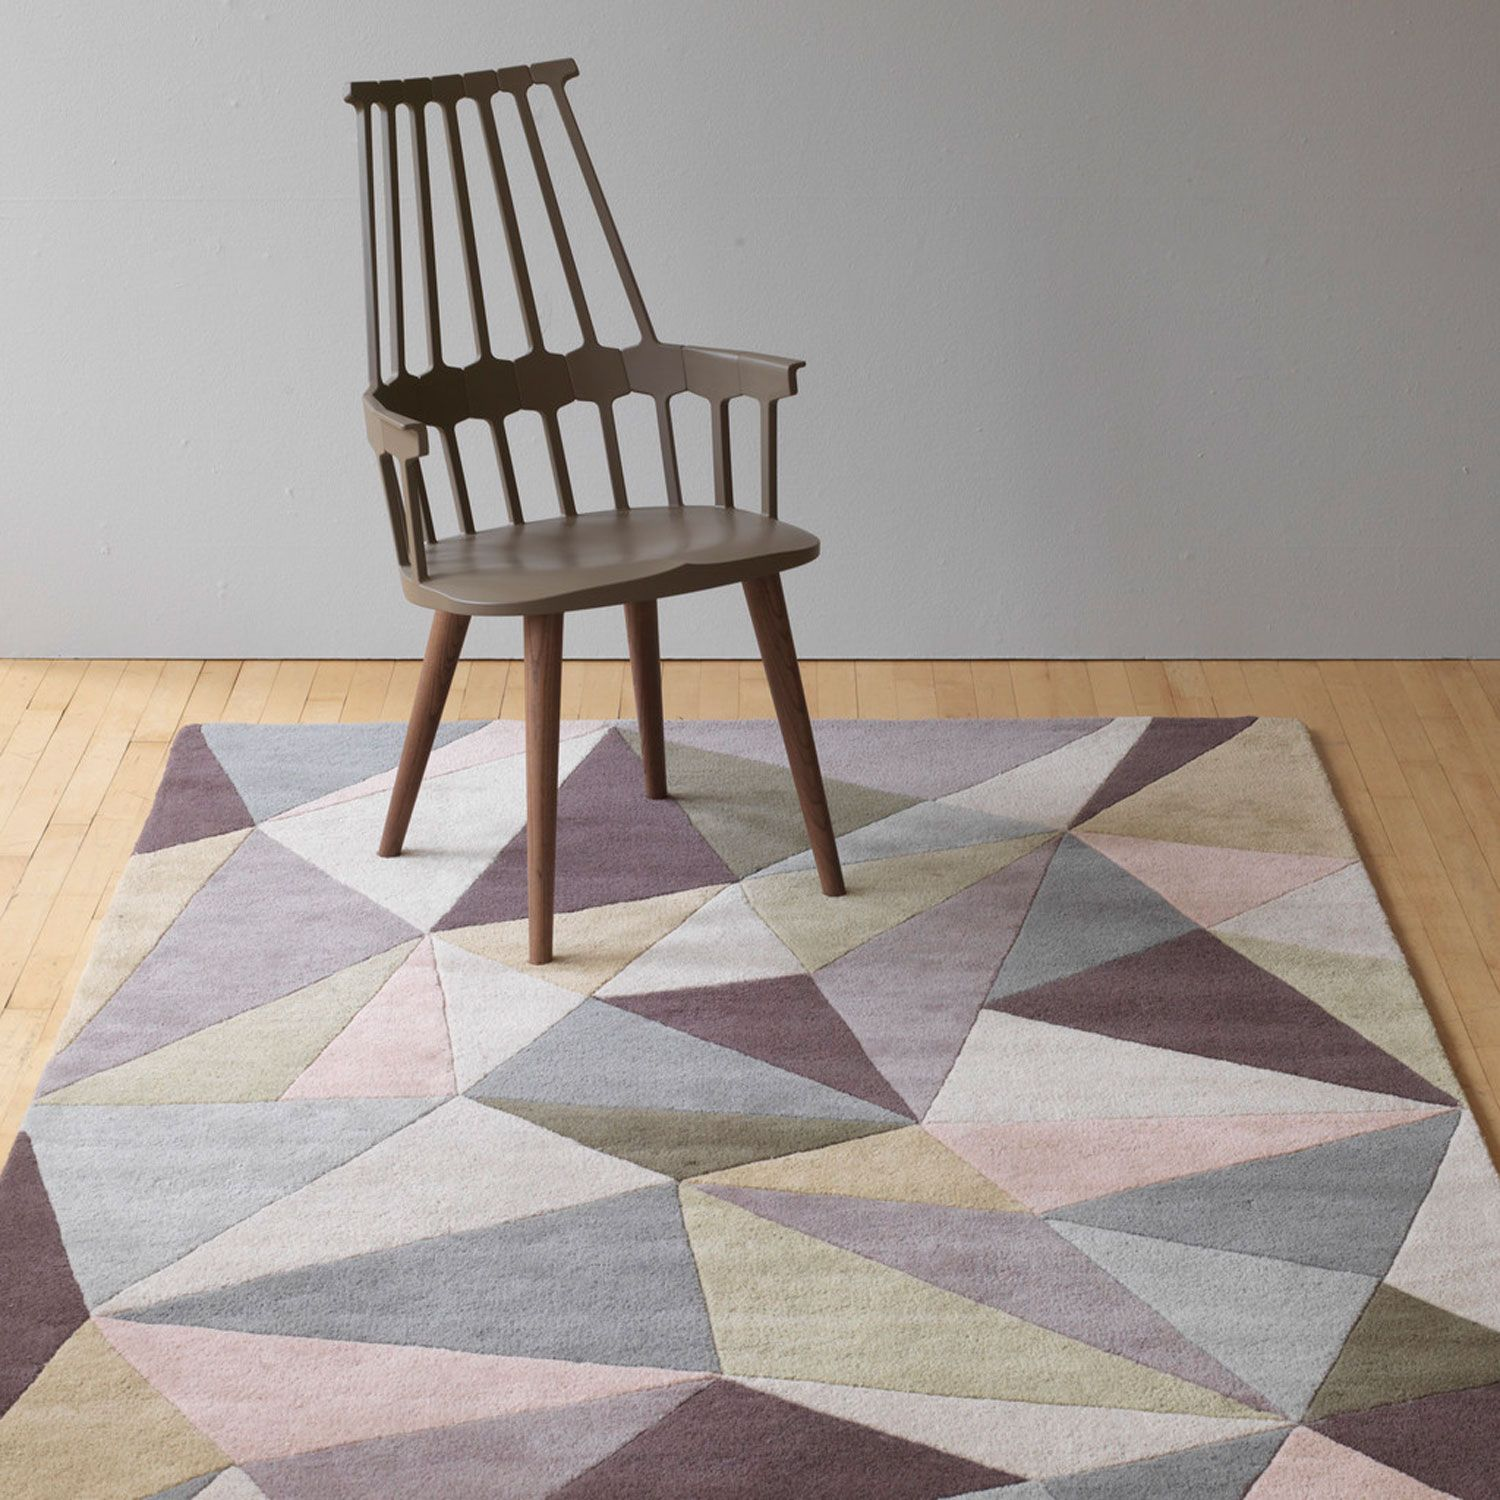 404 Not Found Pastel Rugs Contemporary Modern Furniture Rugs In Living Room